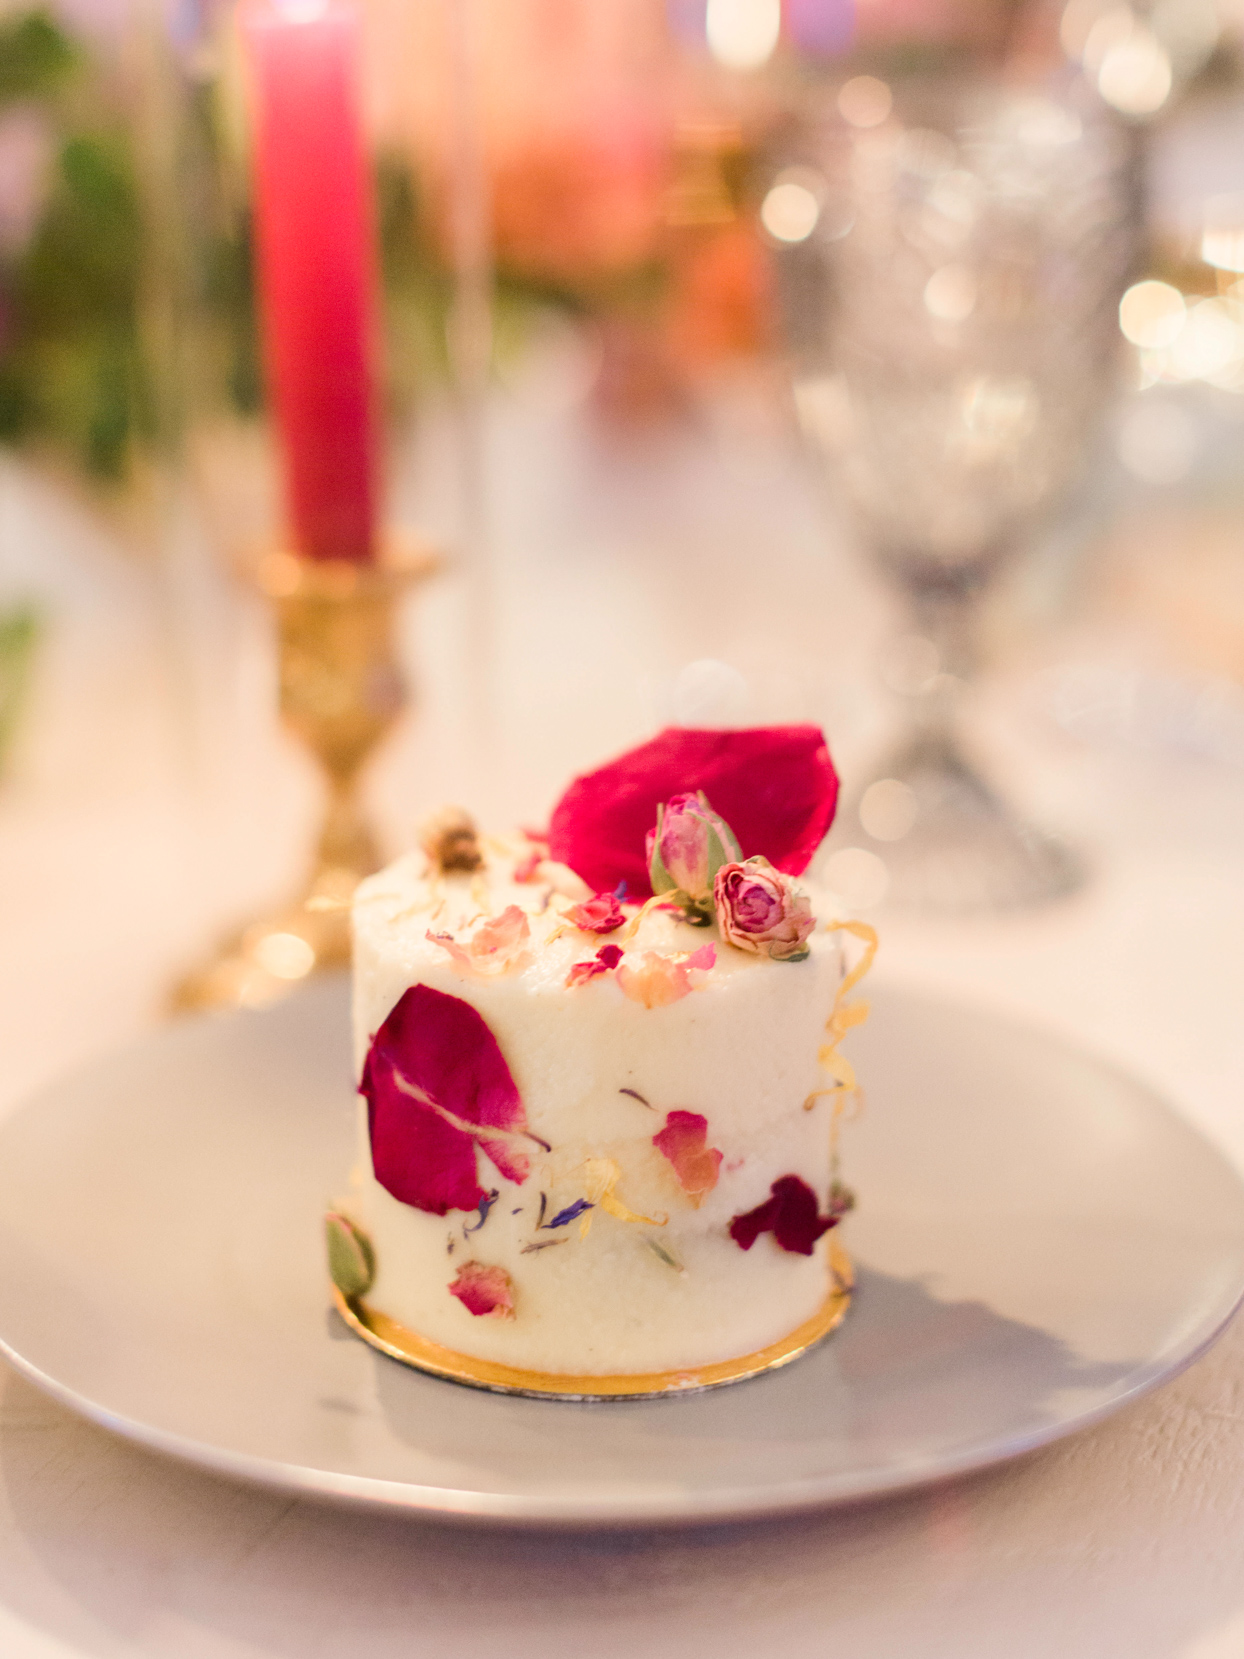 single layer wedding cake with pink flower petals